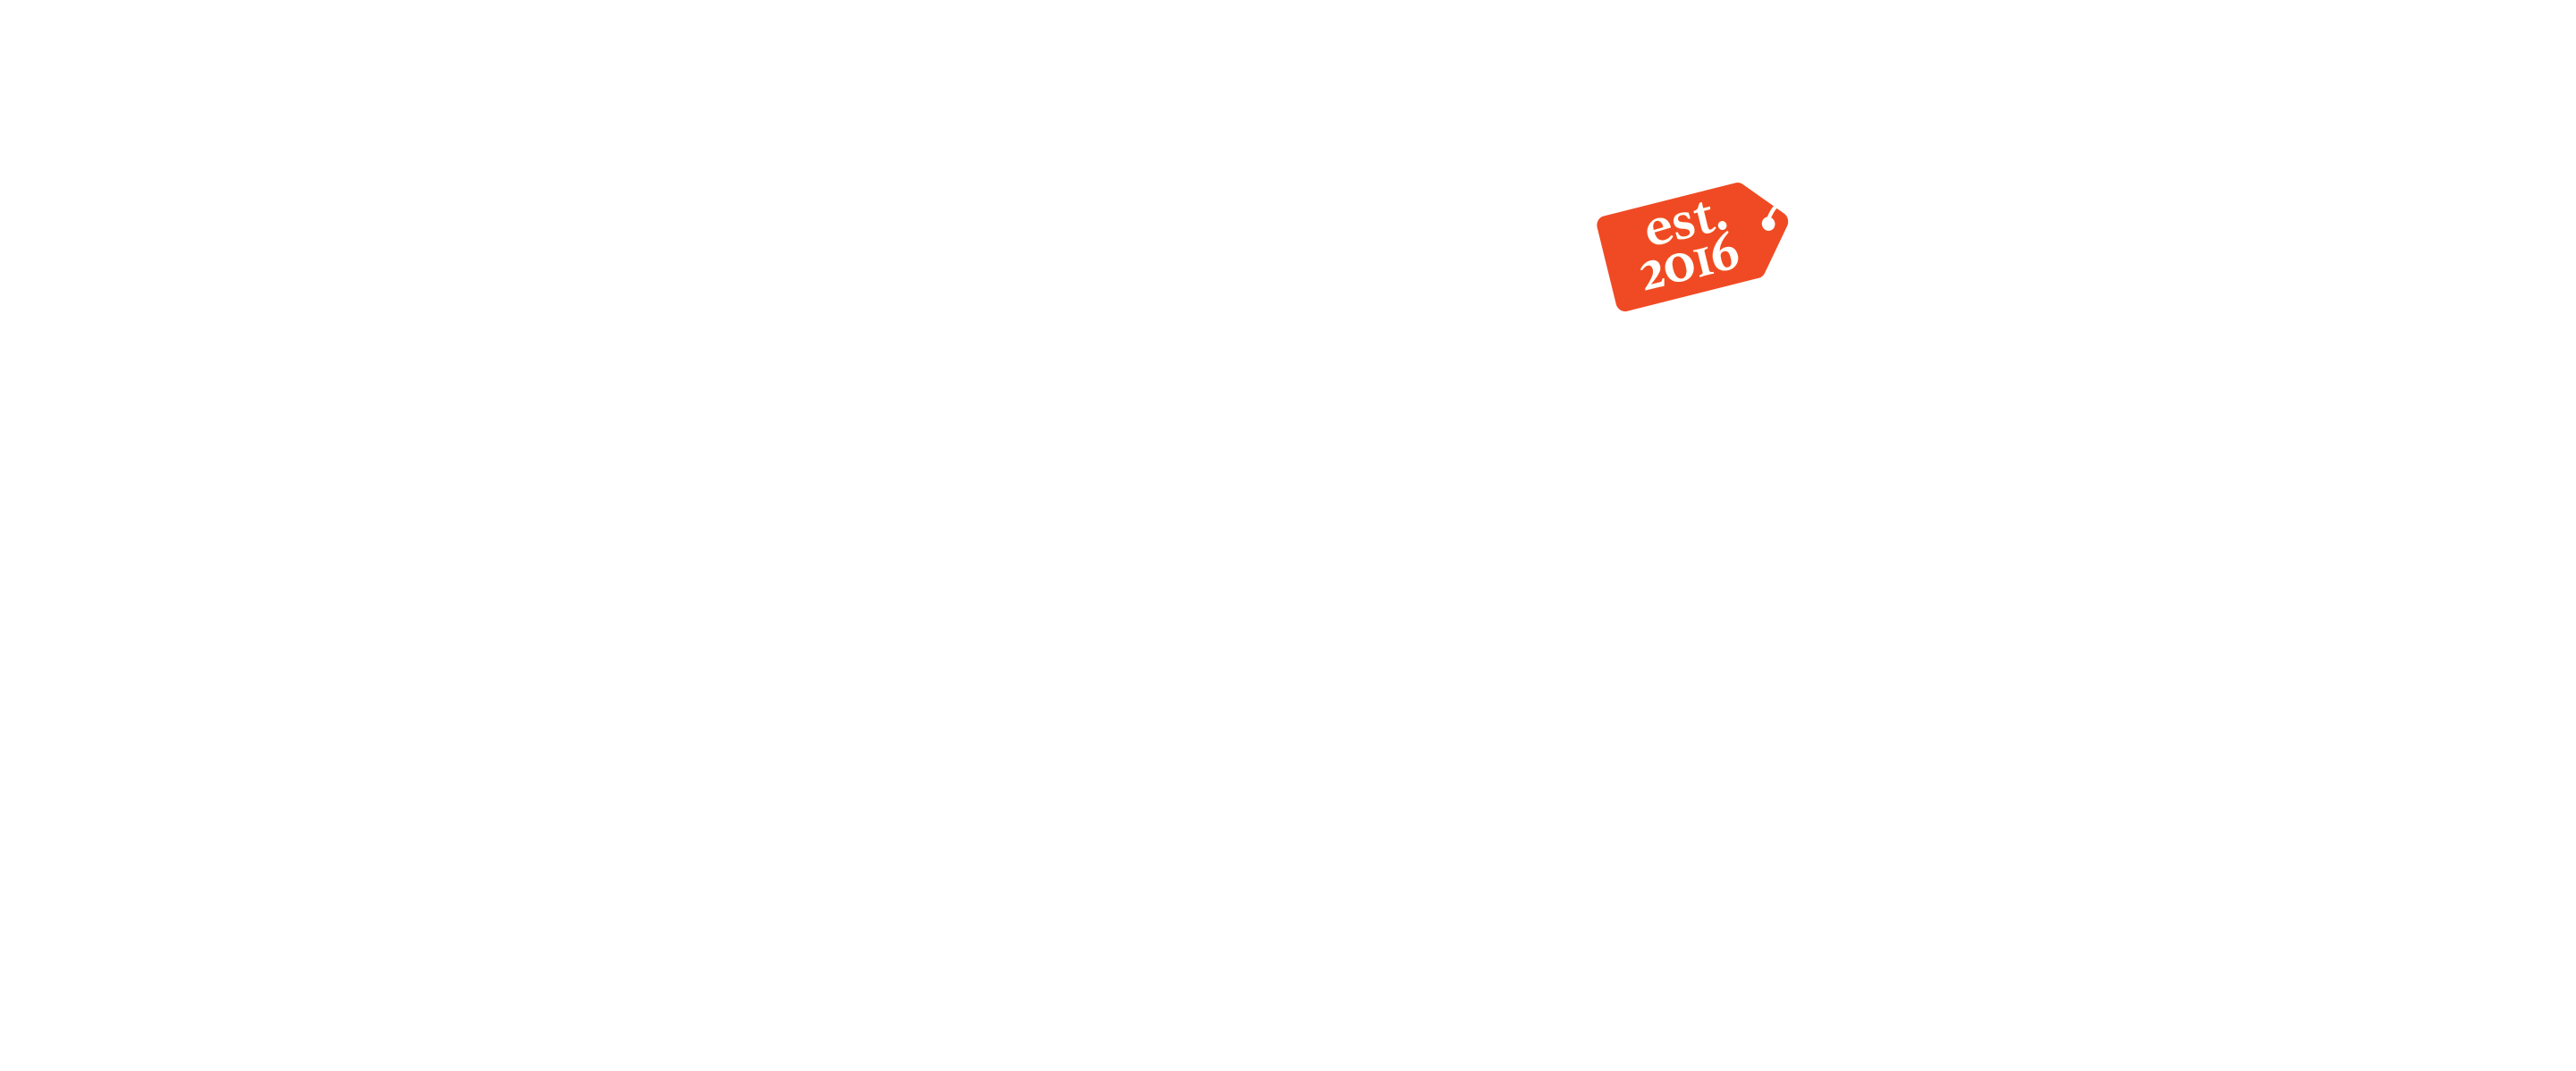 Victorian's Barbecue